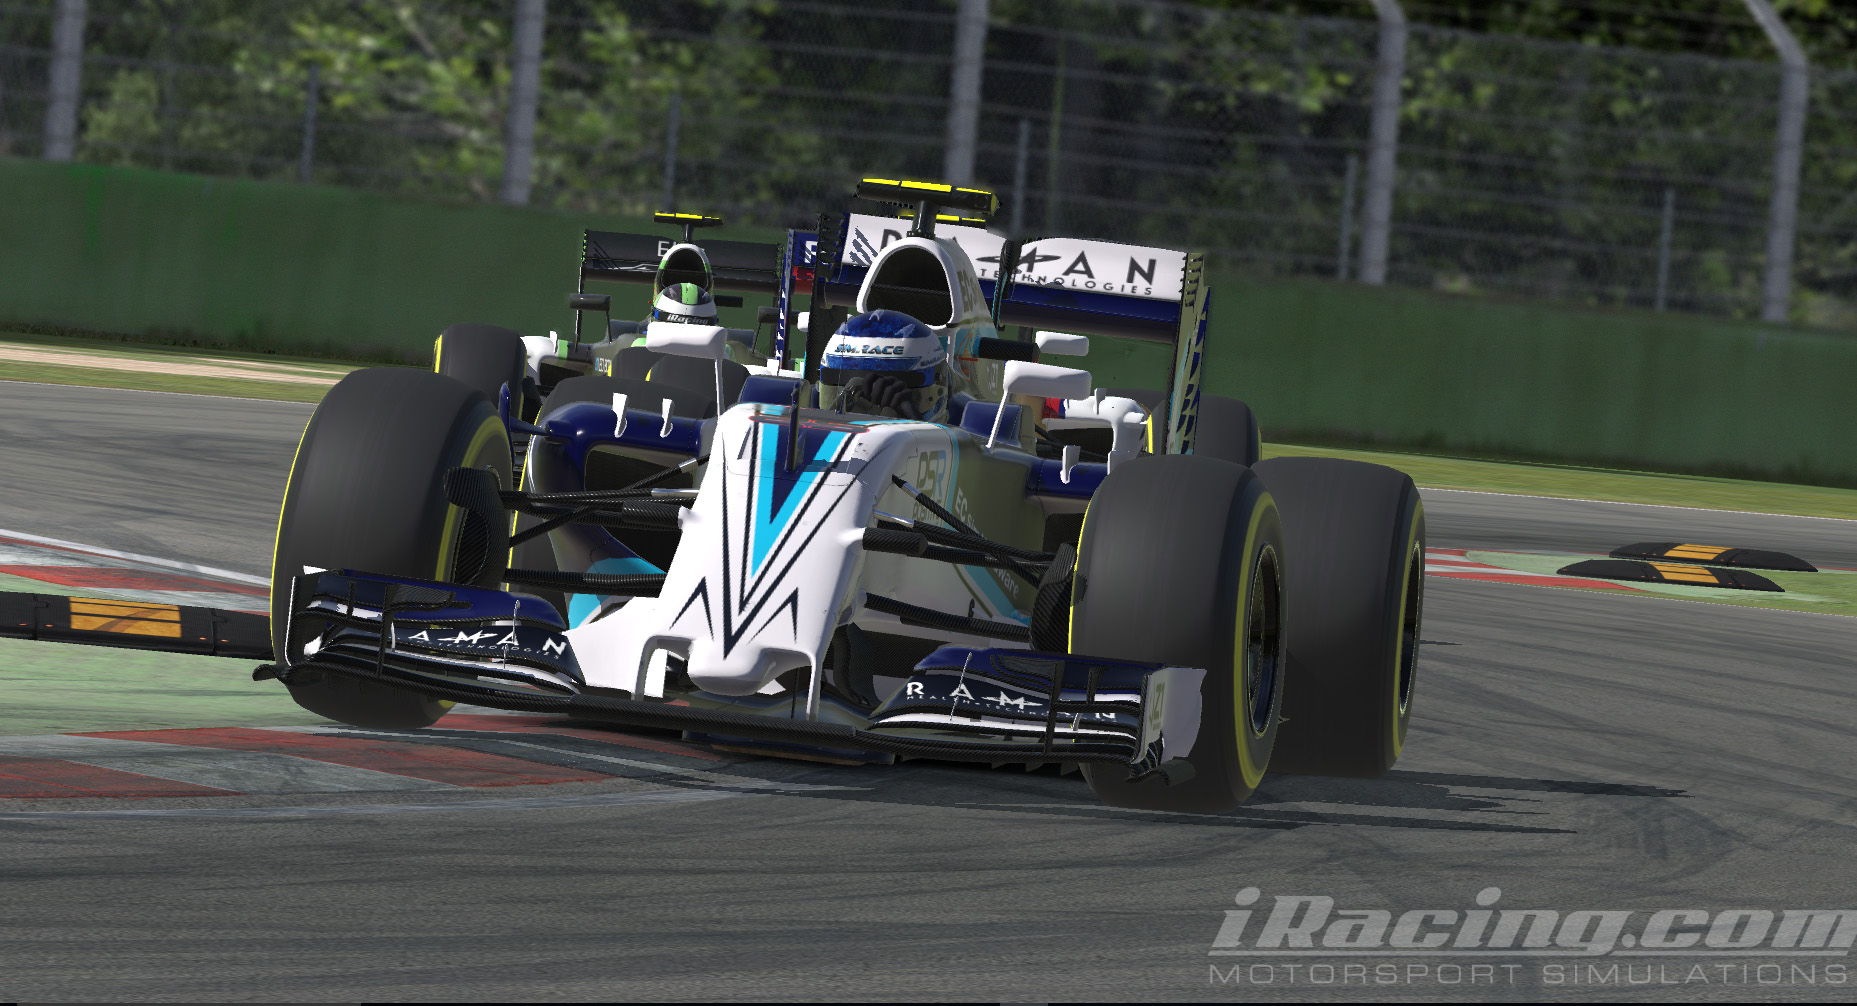 PSR clinches the second Pro license in the 2016 iRacing Pro